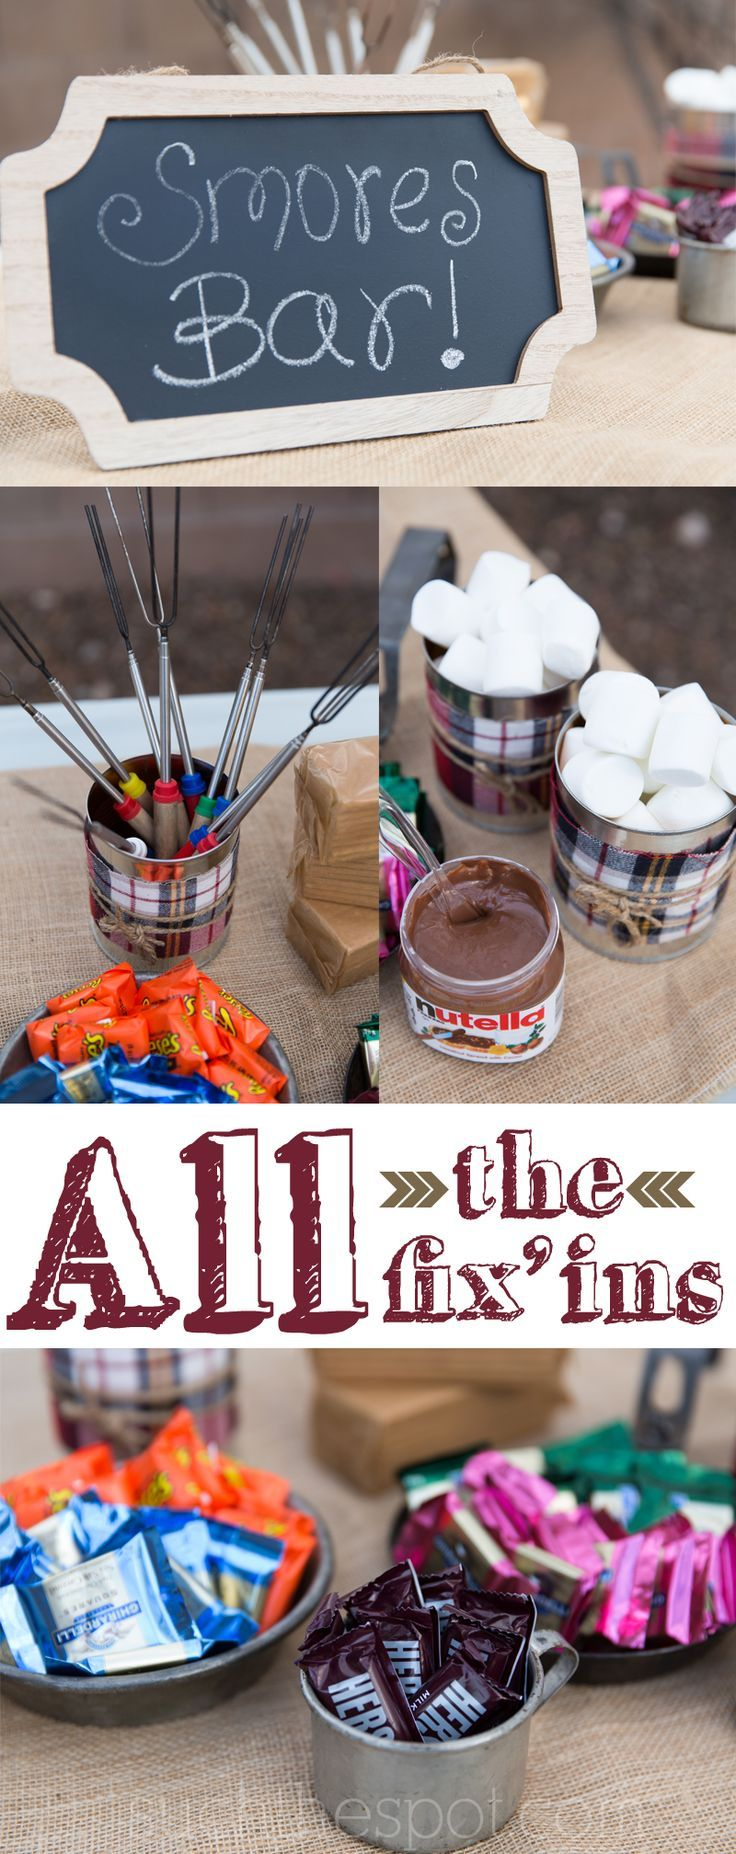 17 best ideas about bonfire parties on pinterest bonfire for 17th birthday decoration ideas